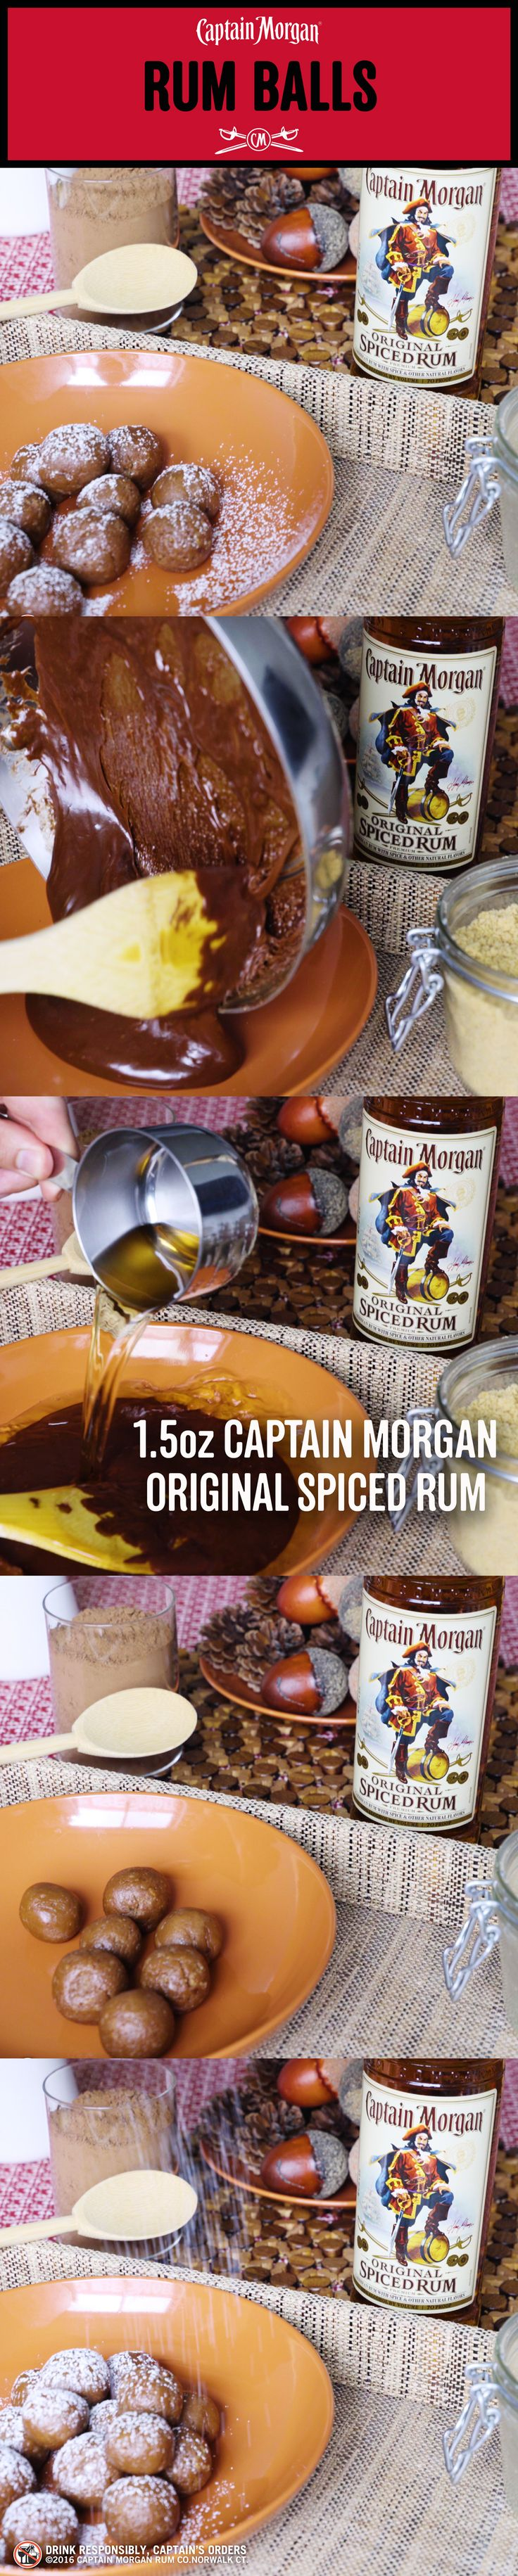 This holiday Captain is more than a drinking buddy, cook up some fun with his rum balls. Rum Balls Recipe: Combine 1 cup of melted chocolate chips with ¼ cup of light corn syrup 1 cup of Captain Morgan Original Spiced Rum 12 oz of processed vanilla wafer cookies Refrigerate for 15 minutes Roll into 1-inch balls Refrigerate for 30 minutes Dust with confectioner's sugar Get more rum recipes at https://us.captainmorgan.com/rum-cocktails/